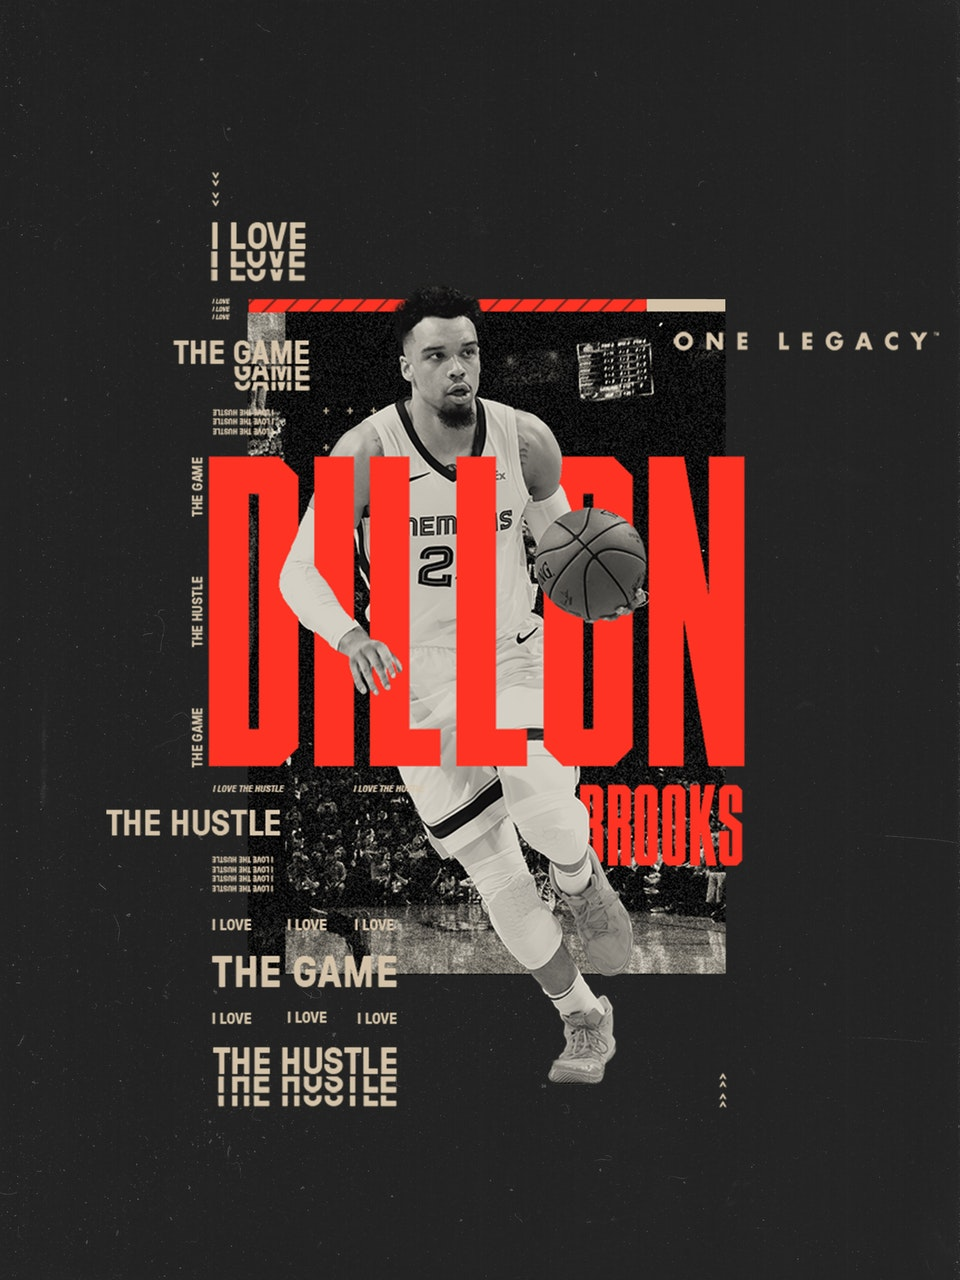 One Legacy Sports Mgmt dillon poster mockup